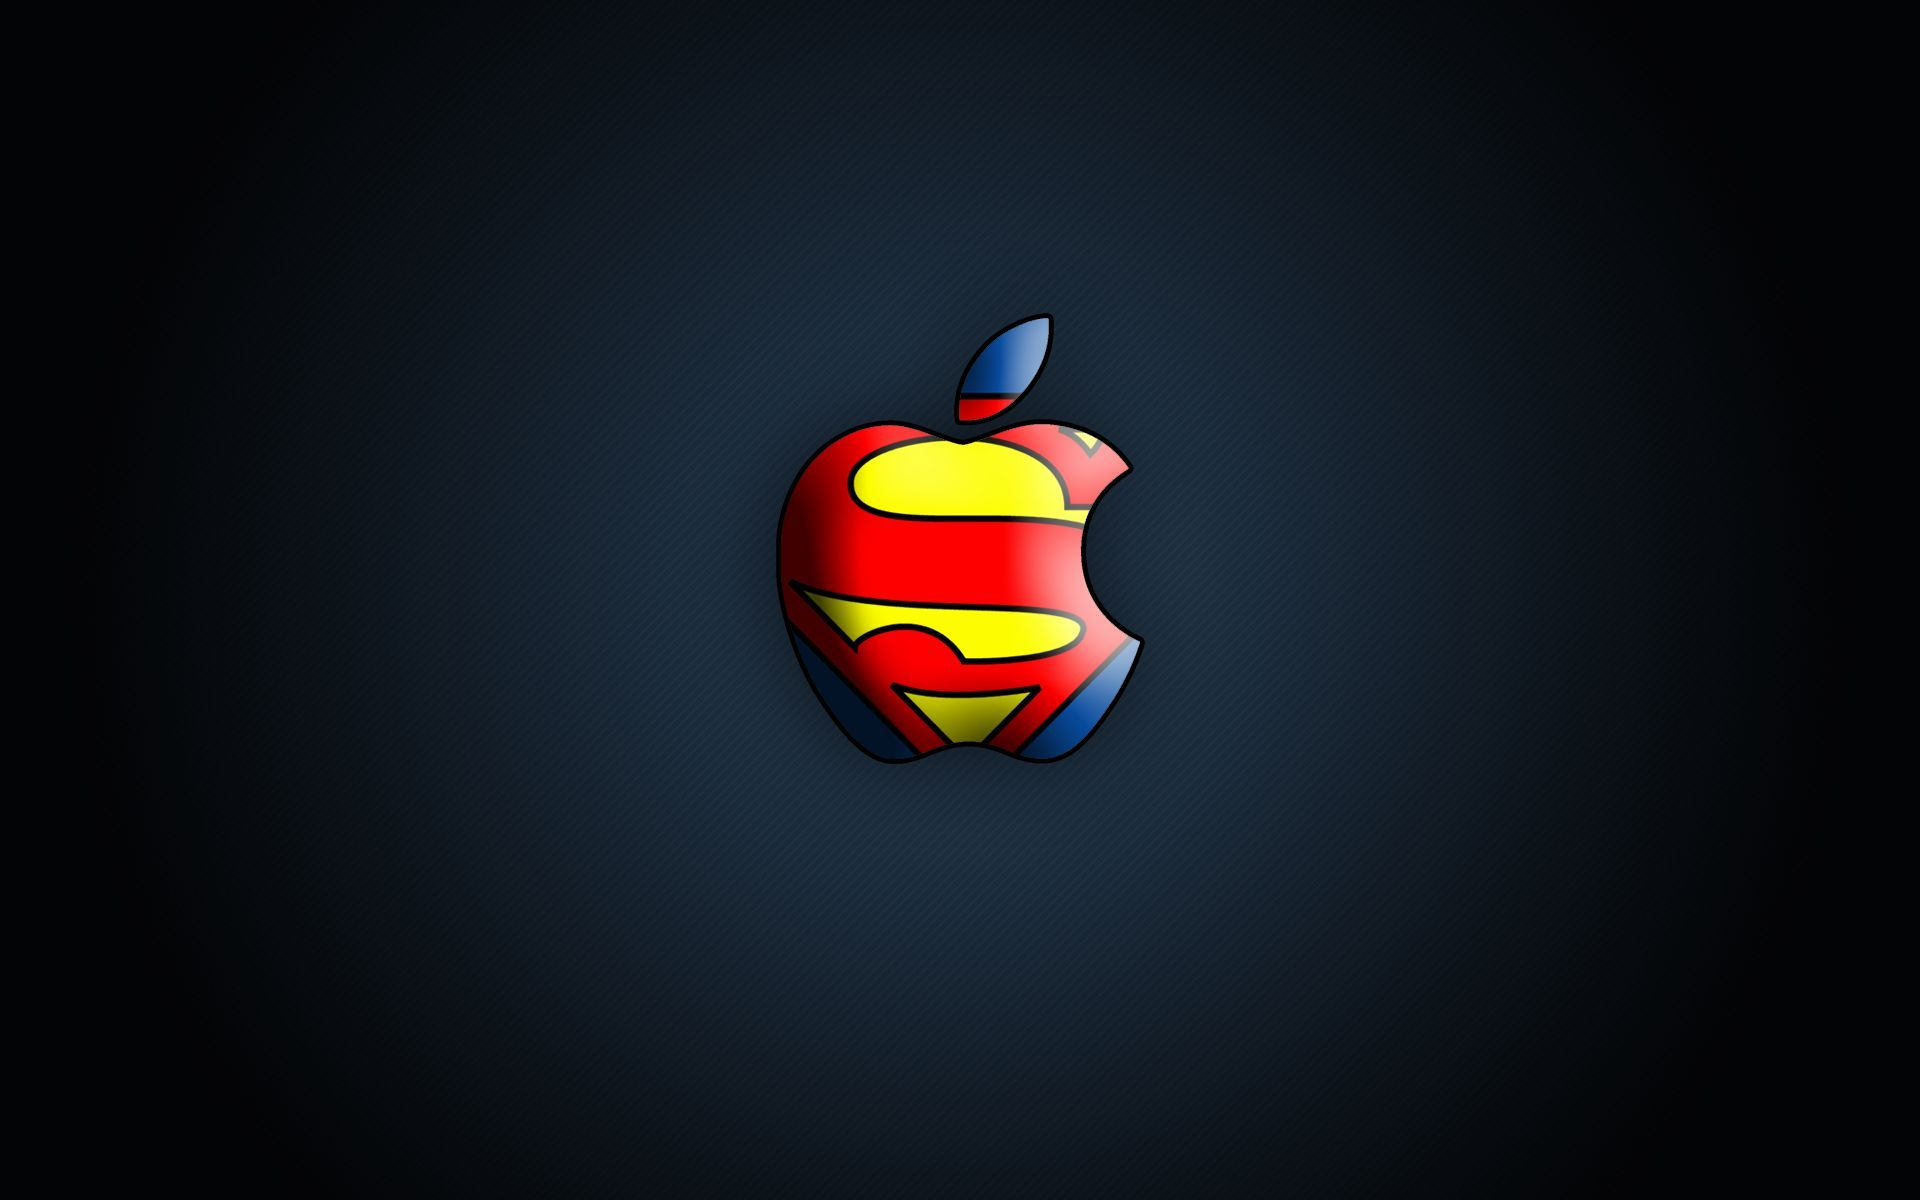 Best Apple Logo Wallpapers - Top Free Best Apple Logo